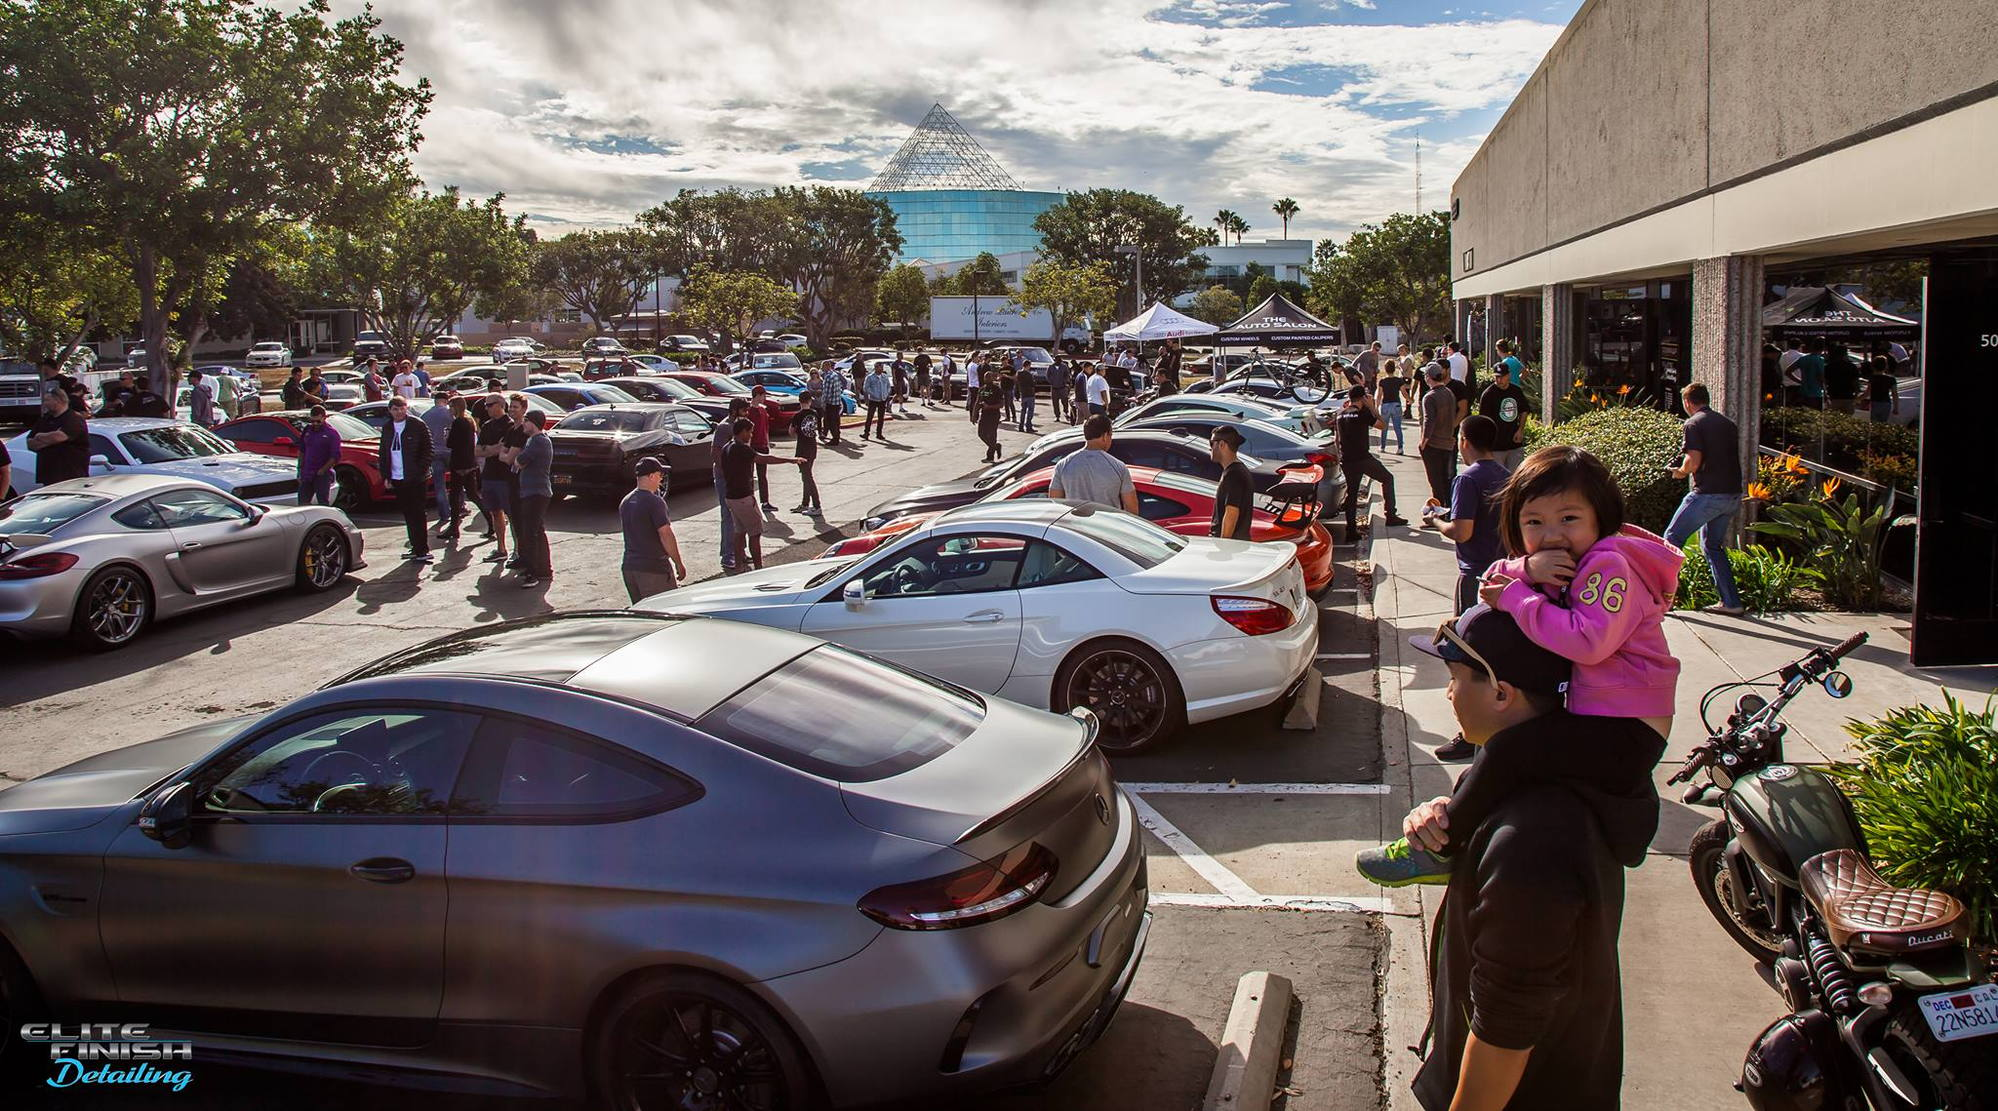 San diego cars and coffee february 18 2017 rennlist for 7 image salon san diego